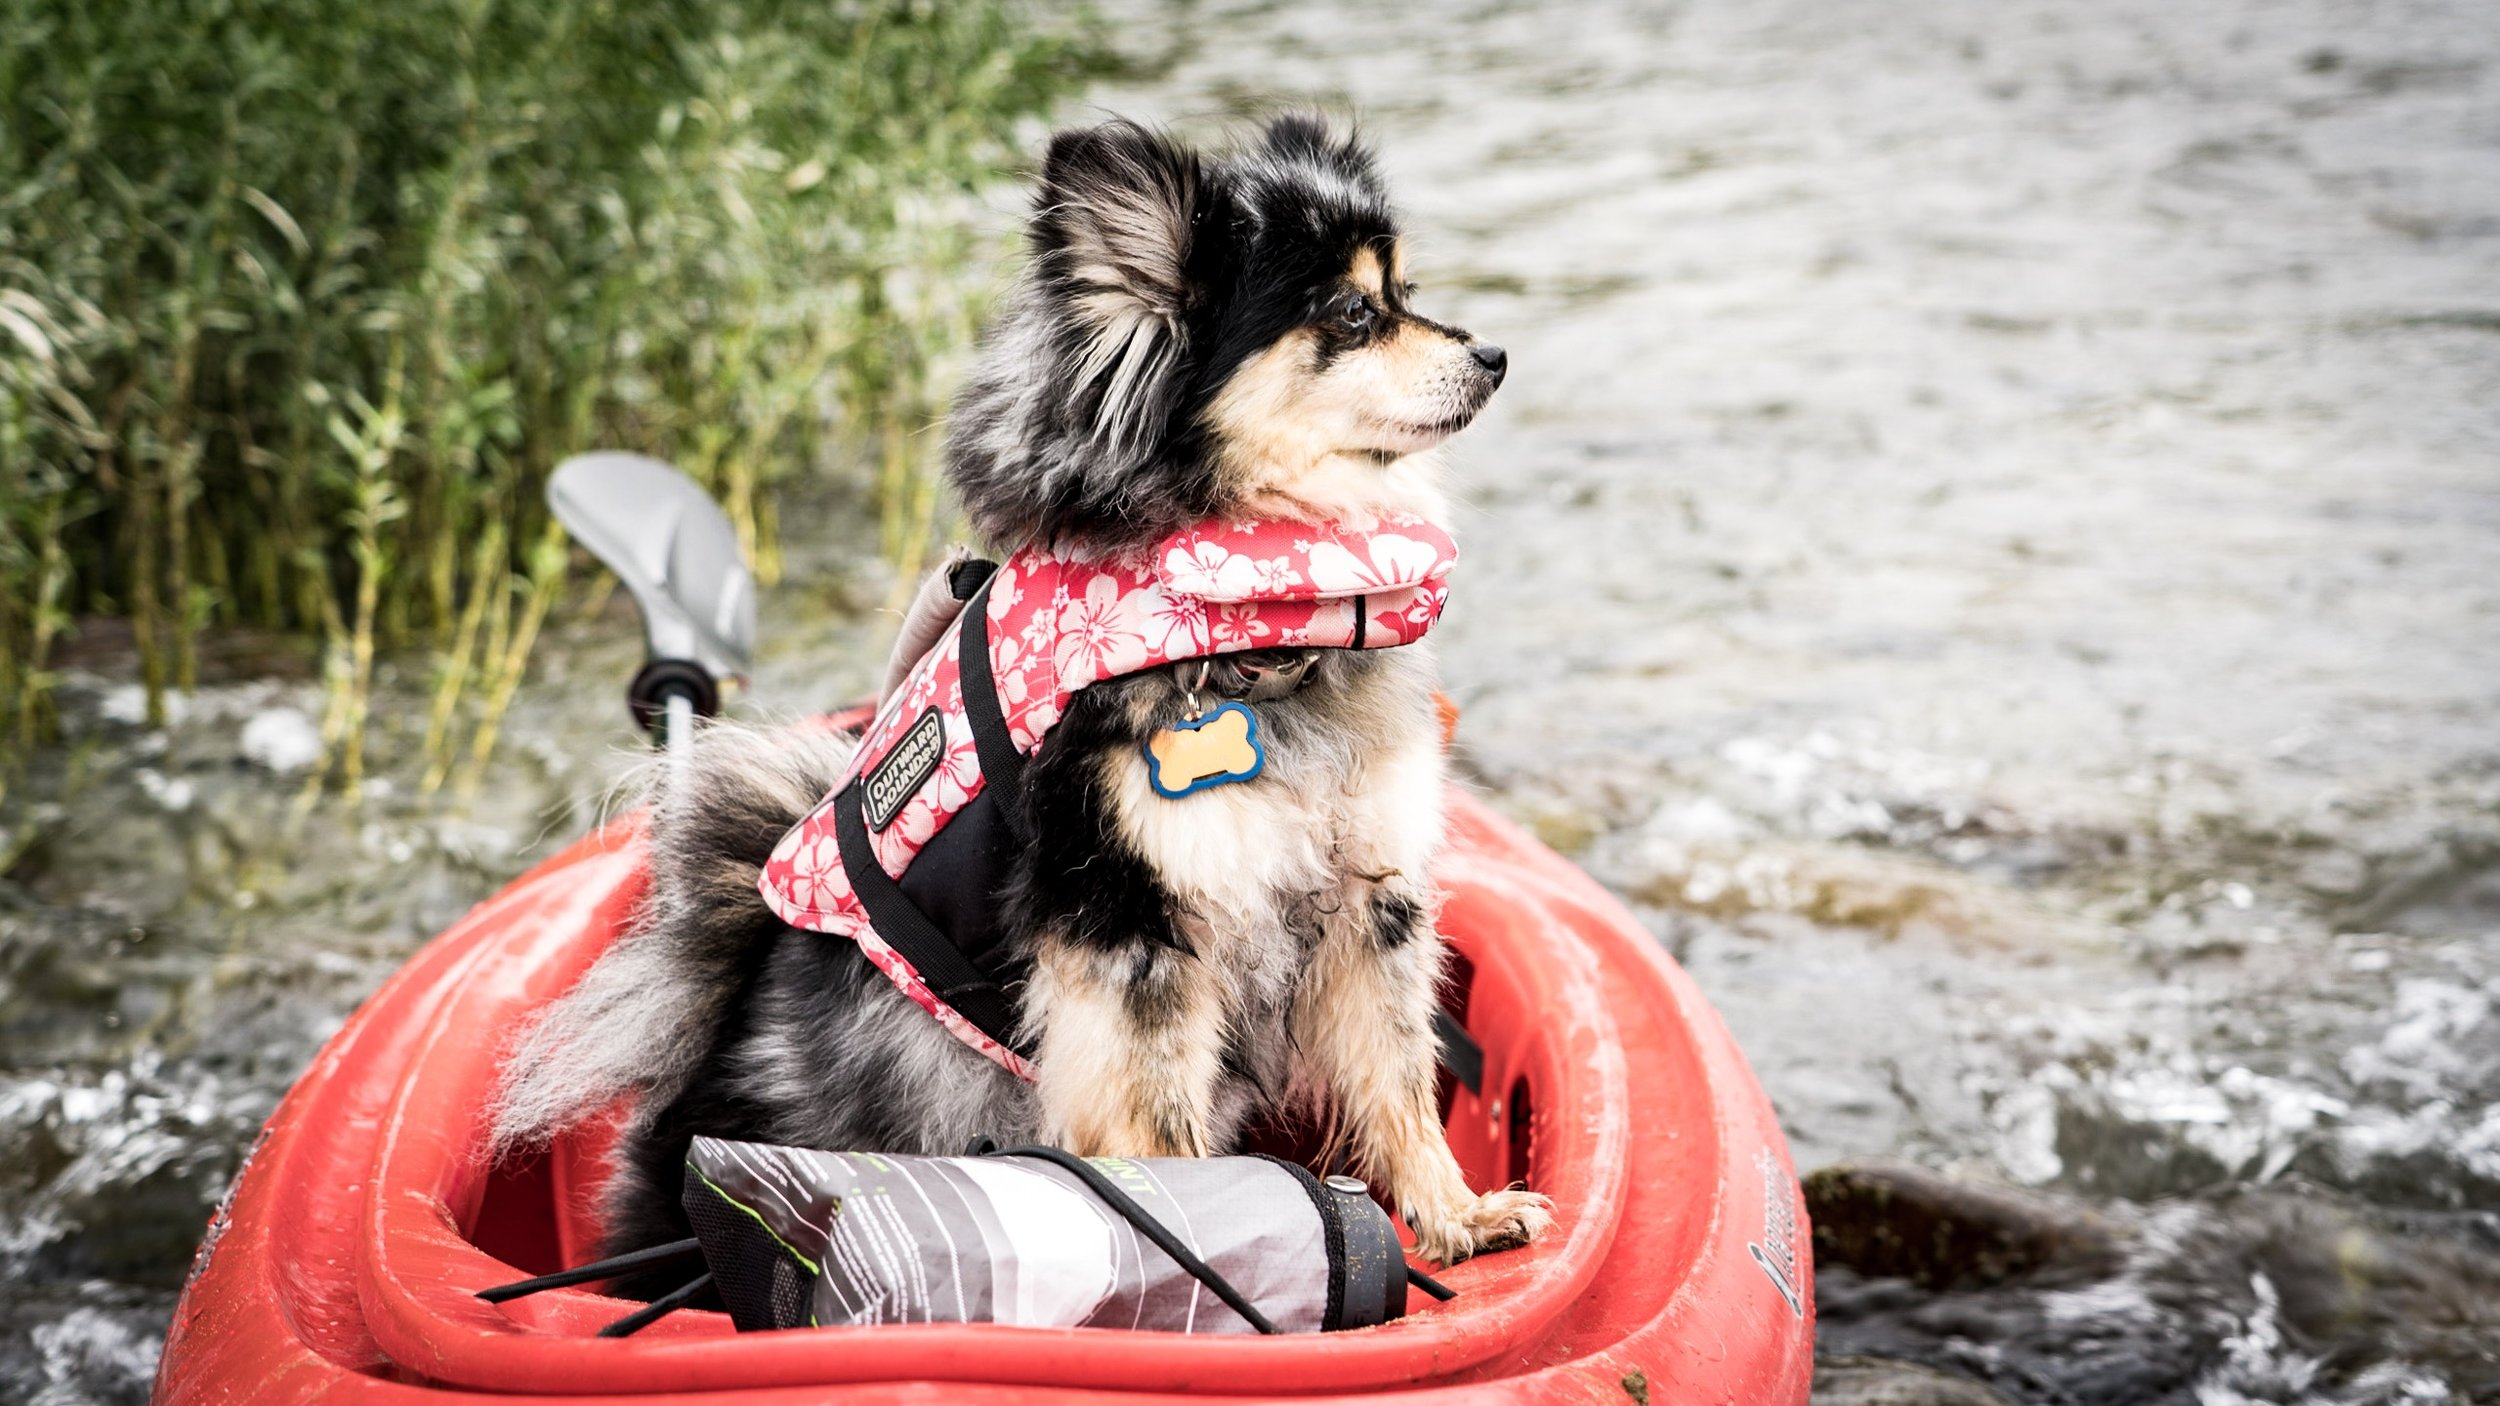 Tinni in her kayak on the Potomac River around mile marker 63 on the C&O Canal